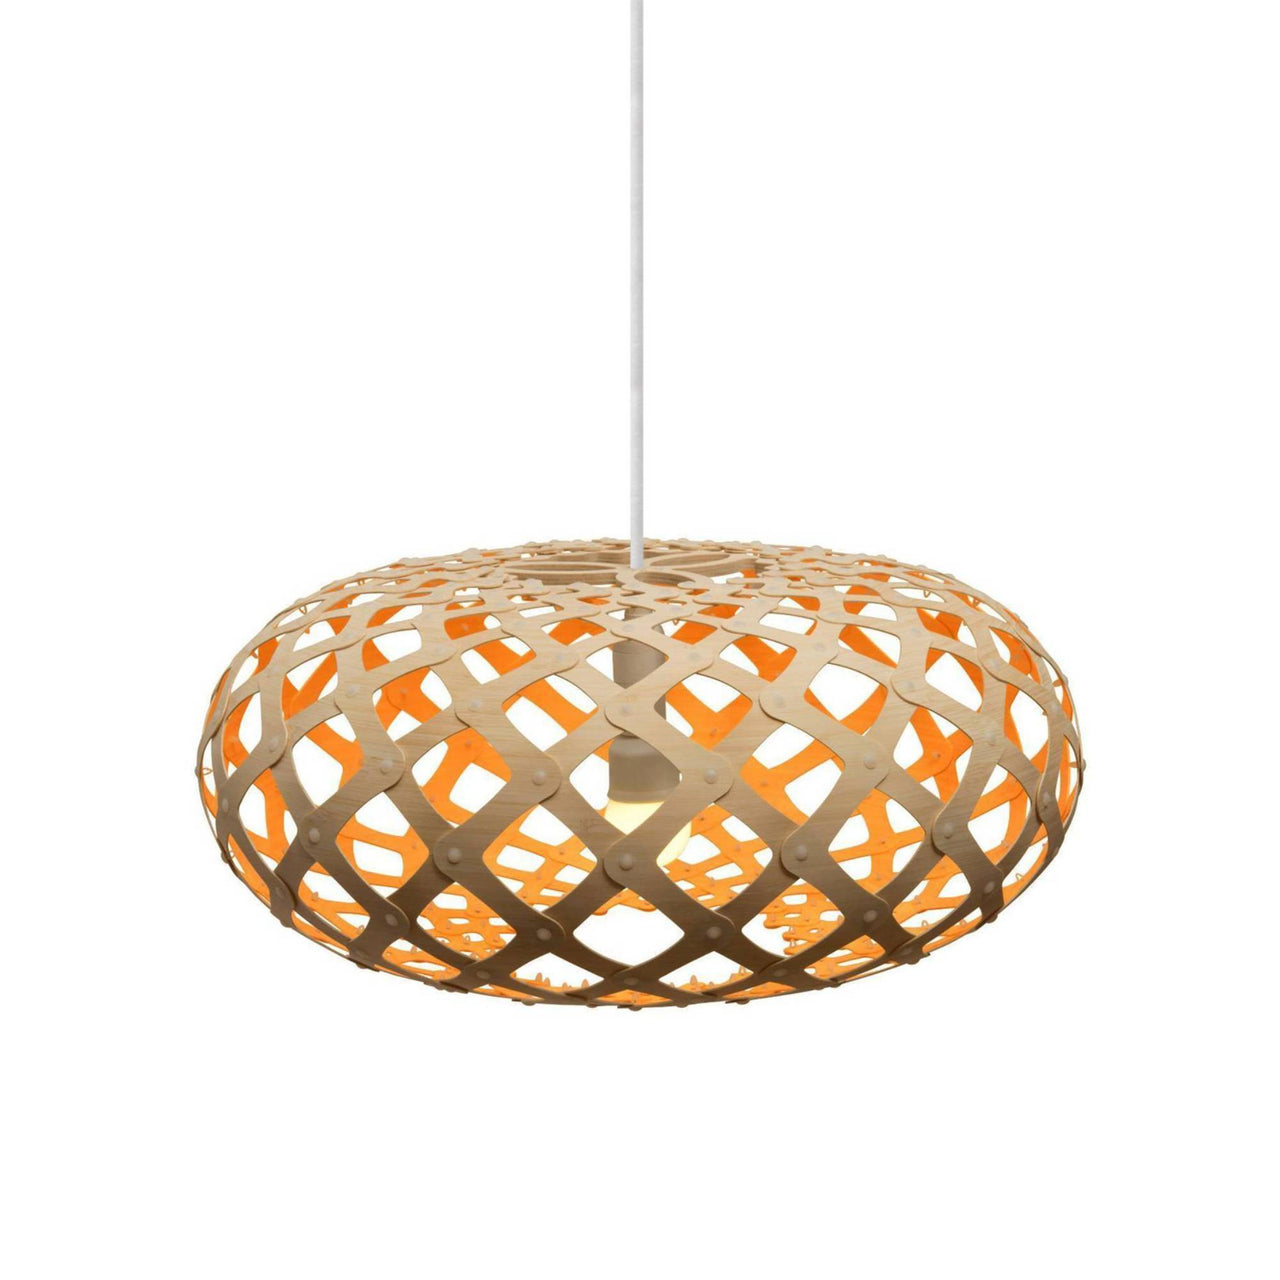 Kina Pendant Light: 440 + Orange